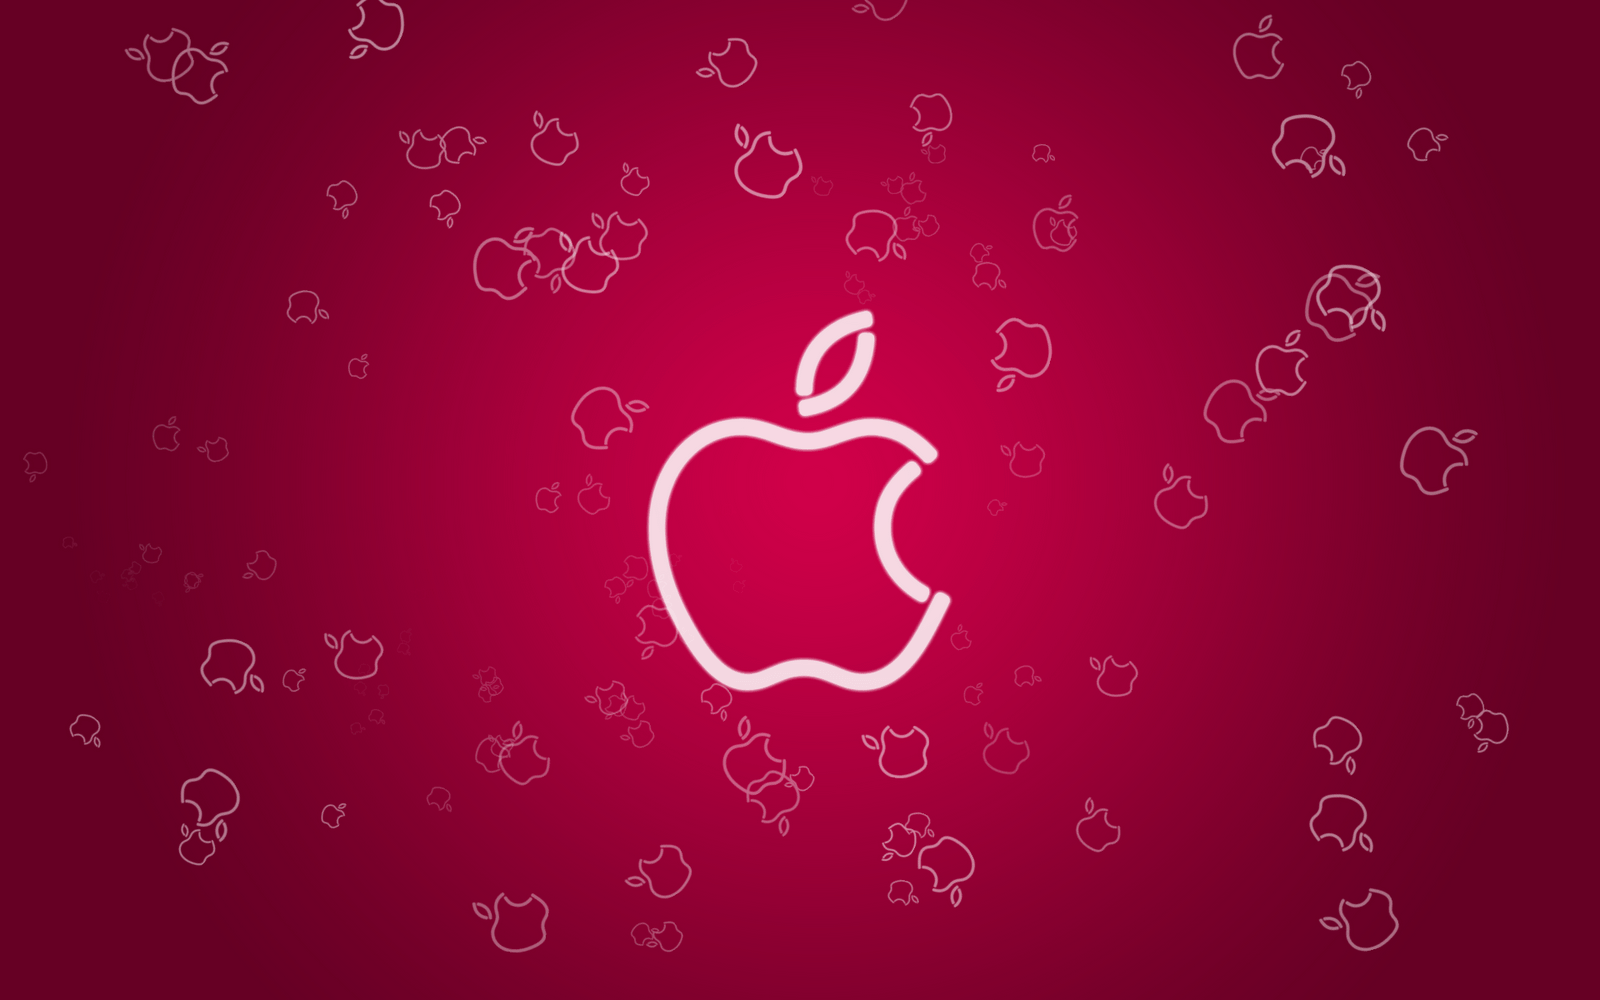 Wallpapers For > Red Apple Logo Wallpapers Hd